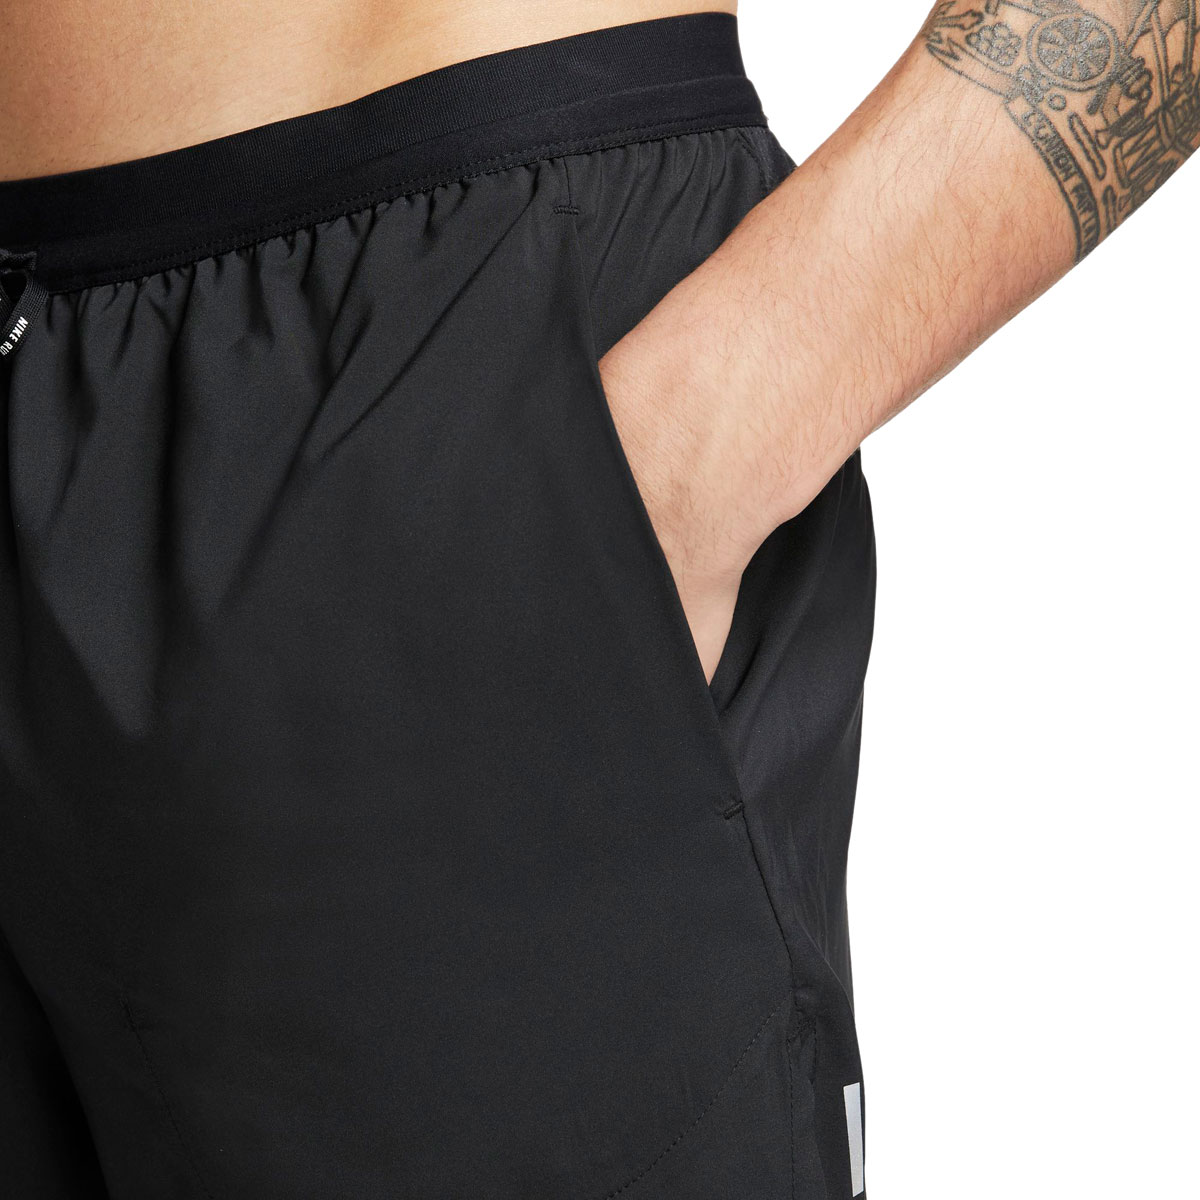 "Men's Nike Flex Stride 5"" Brief Running Shorts, , large, image 3"